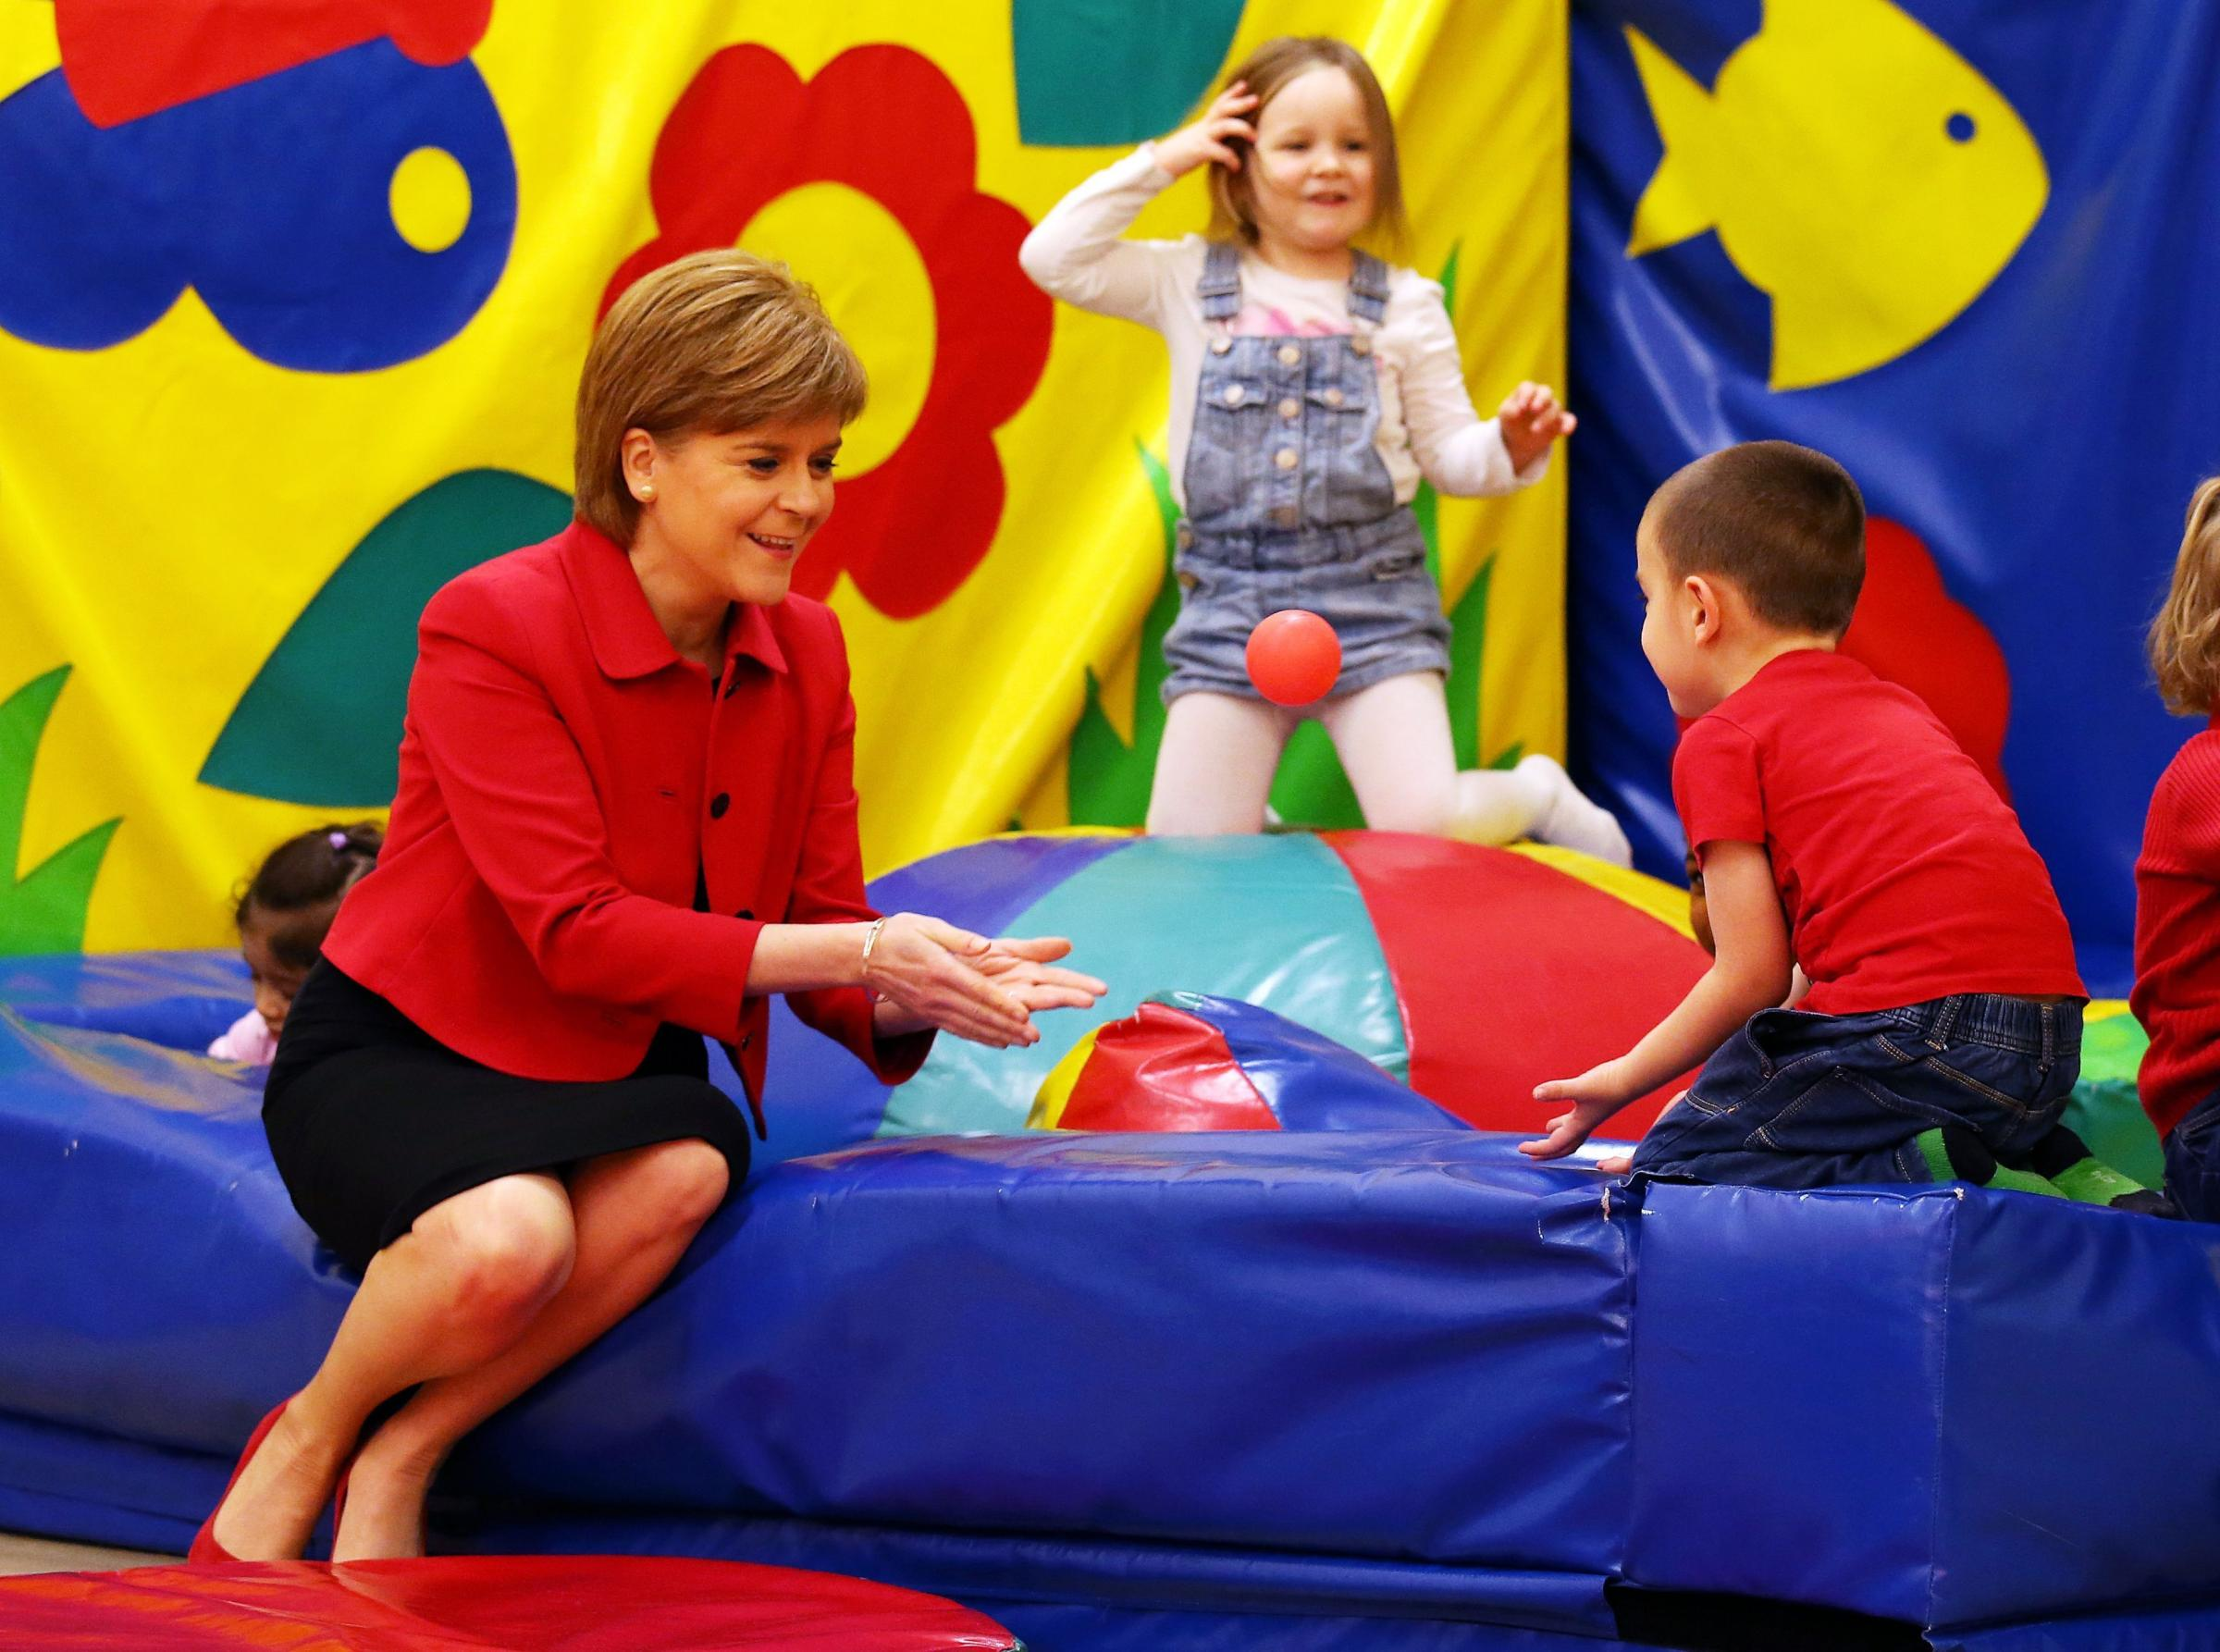 First Minister Nicola Sturgeon plays with children during a visit to North Edinburgh Childcare